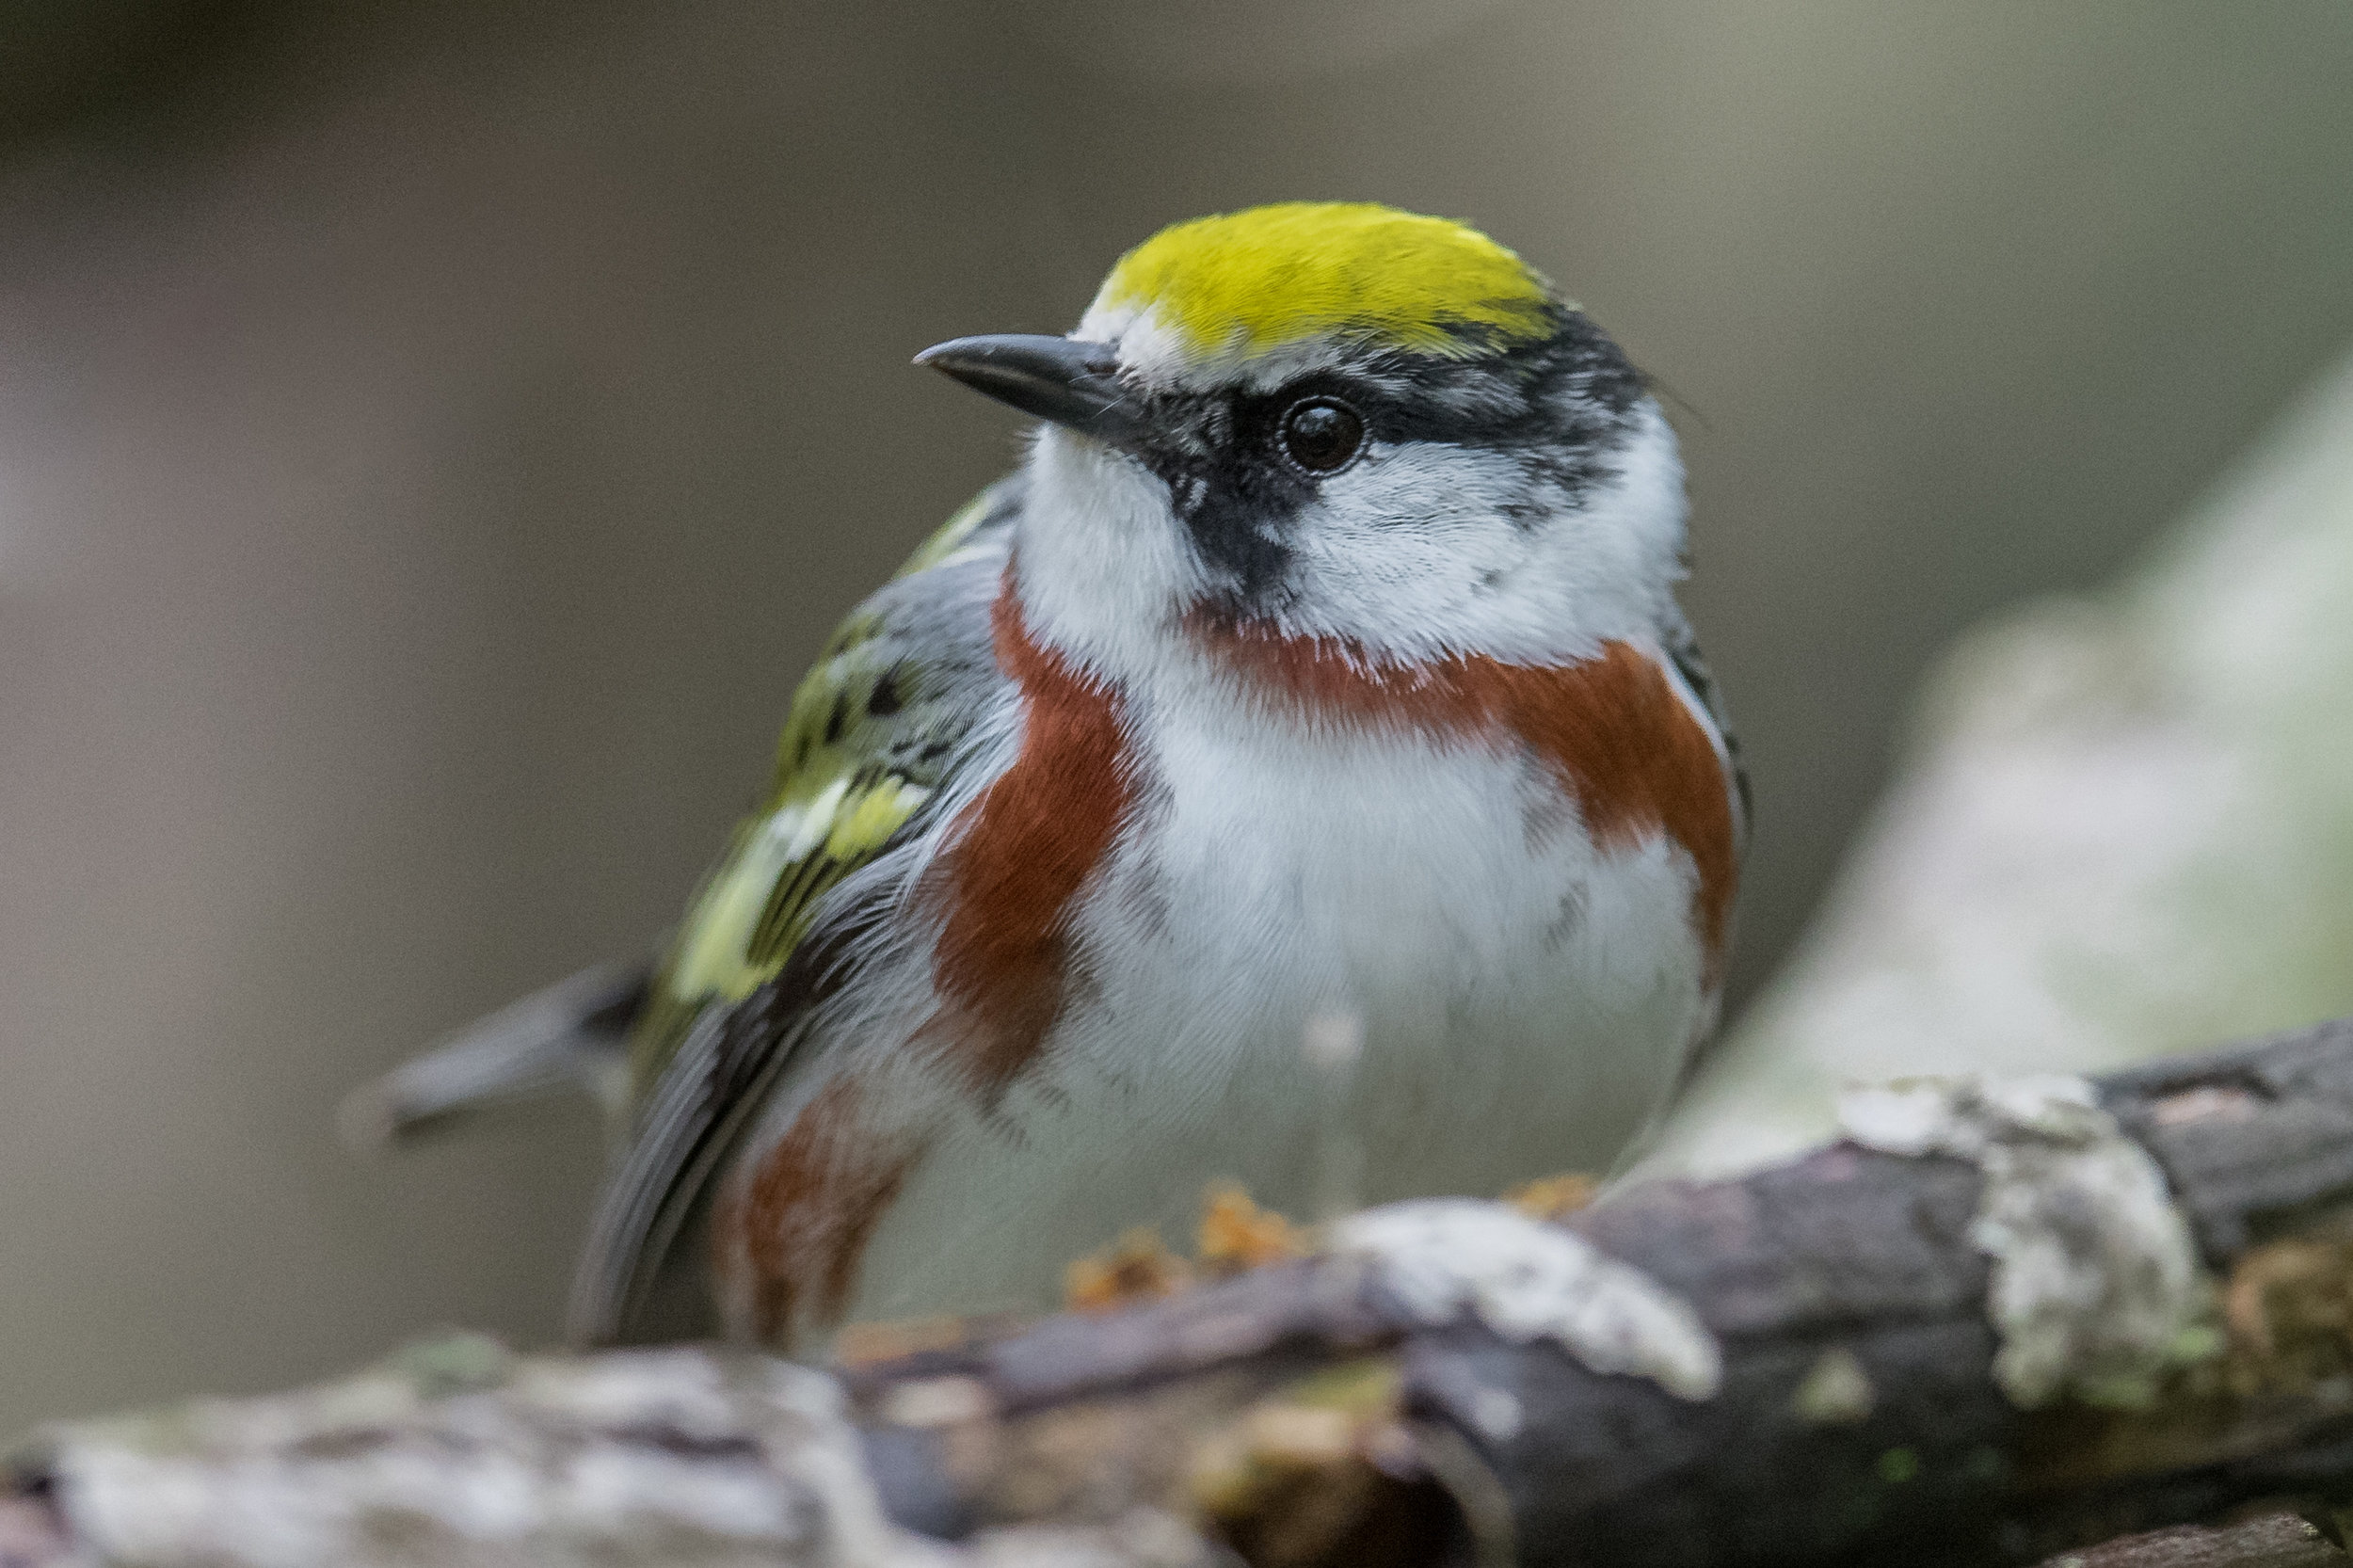 Featured Photo: Chestnut-sided Warbler (Setophaga pensylvanica), Magee Marsh, LUC (OH)  EQ: D850, 500mm f/4 Taken: 5-13-2019 at 14:35  Settings: 500mm (35mm eqv), 1/800s, f/4.5, ISO1100, 1/3EV Conditions: overcast